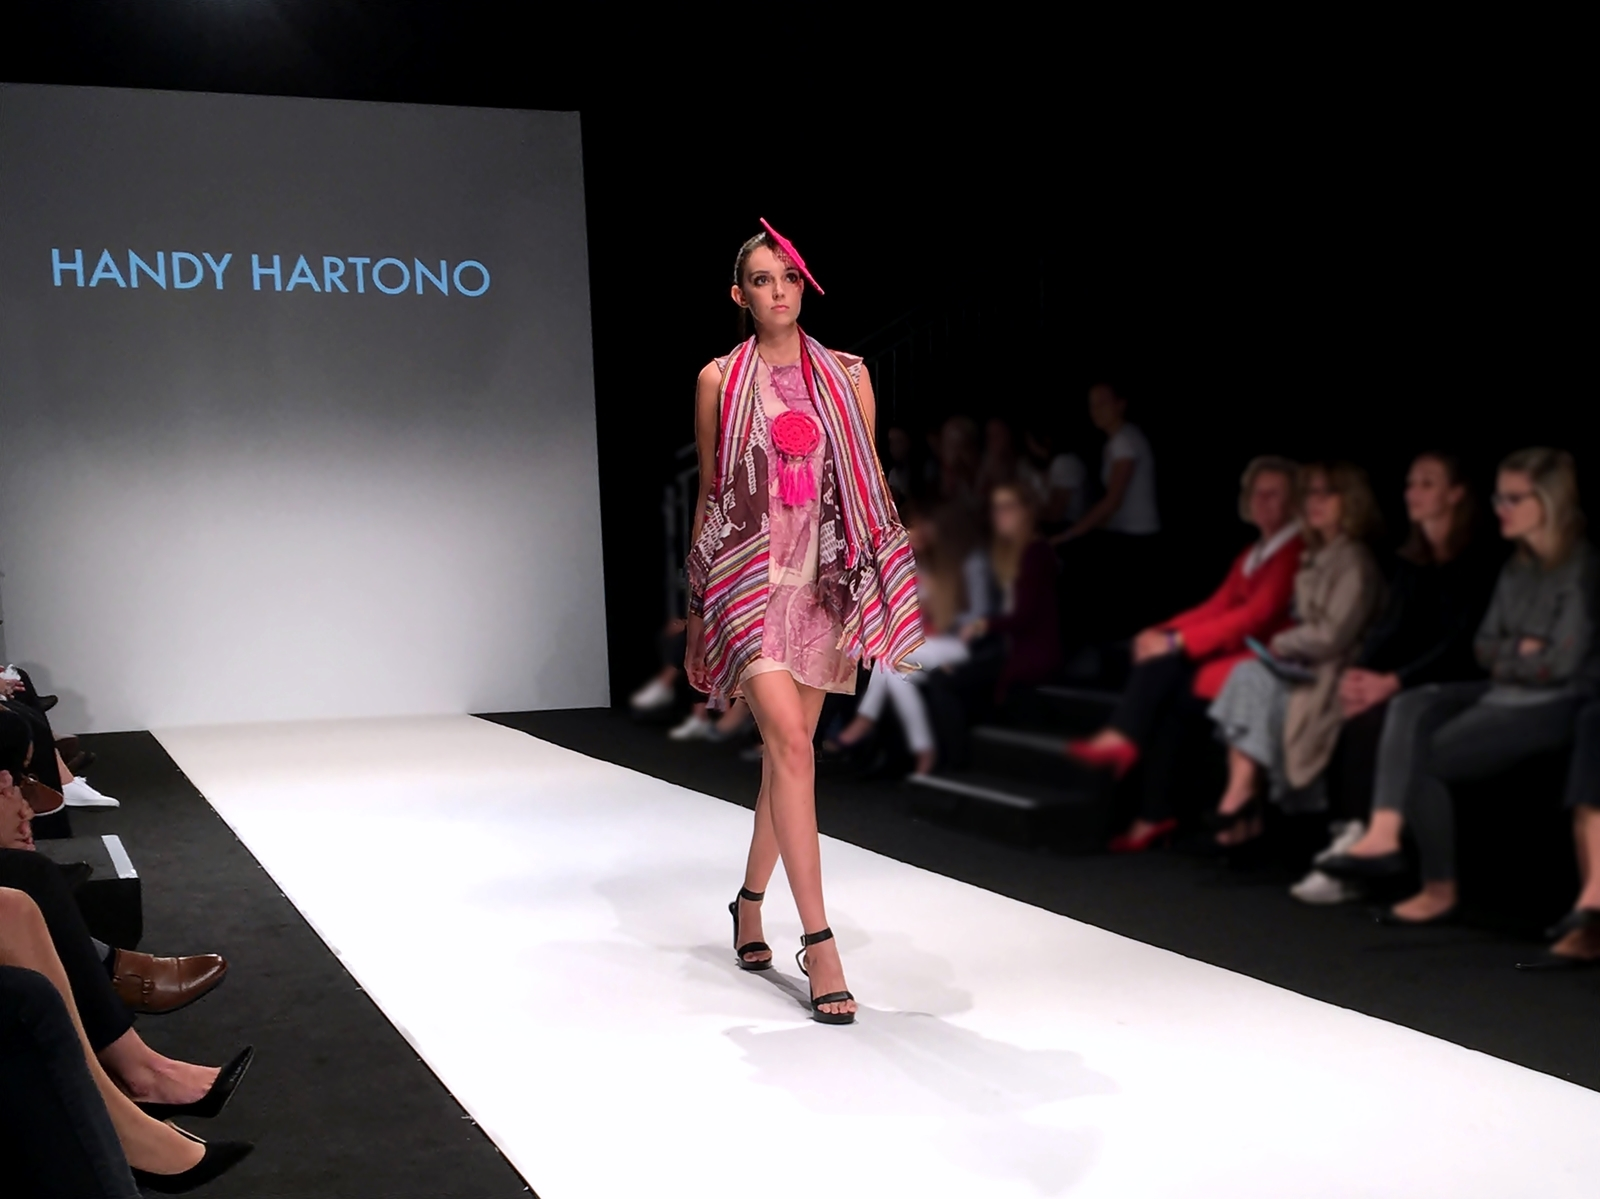 Vienna Fashion Week 2017 - Laufsteg - Show - Handy Hartono Designer - Fashionladyloves by Tamara Wagner - Fashion Blog